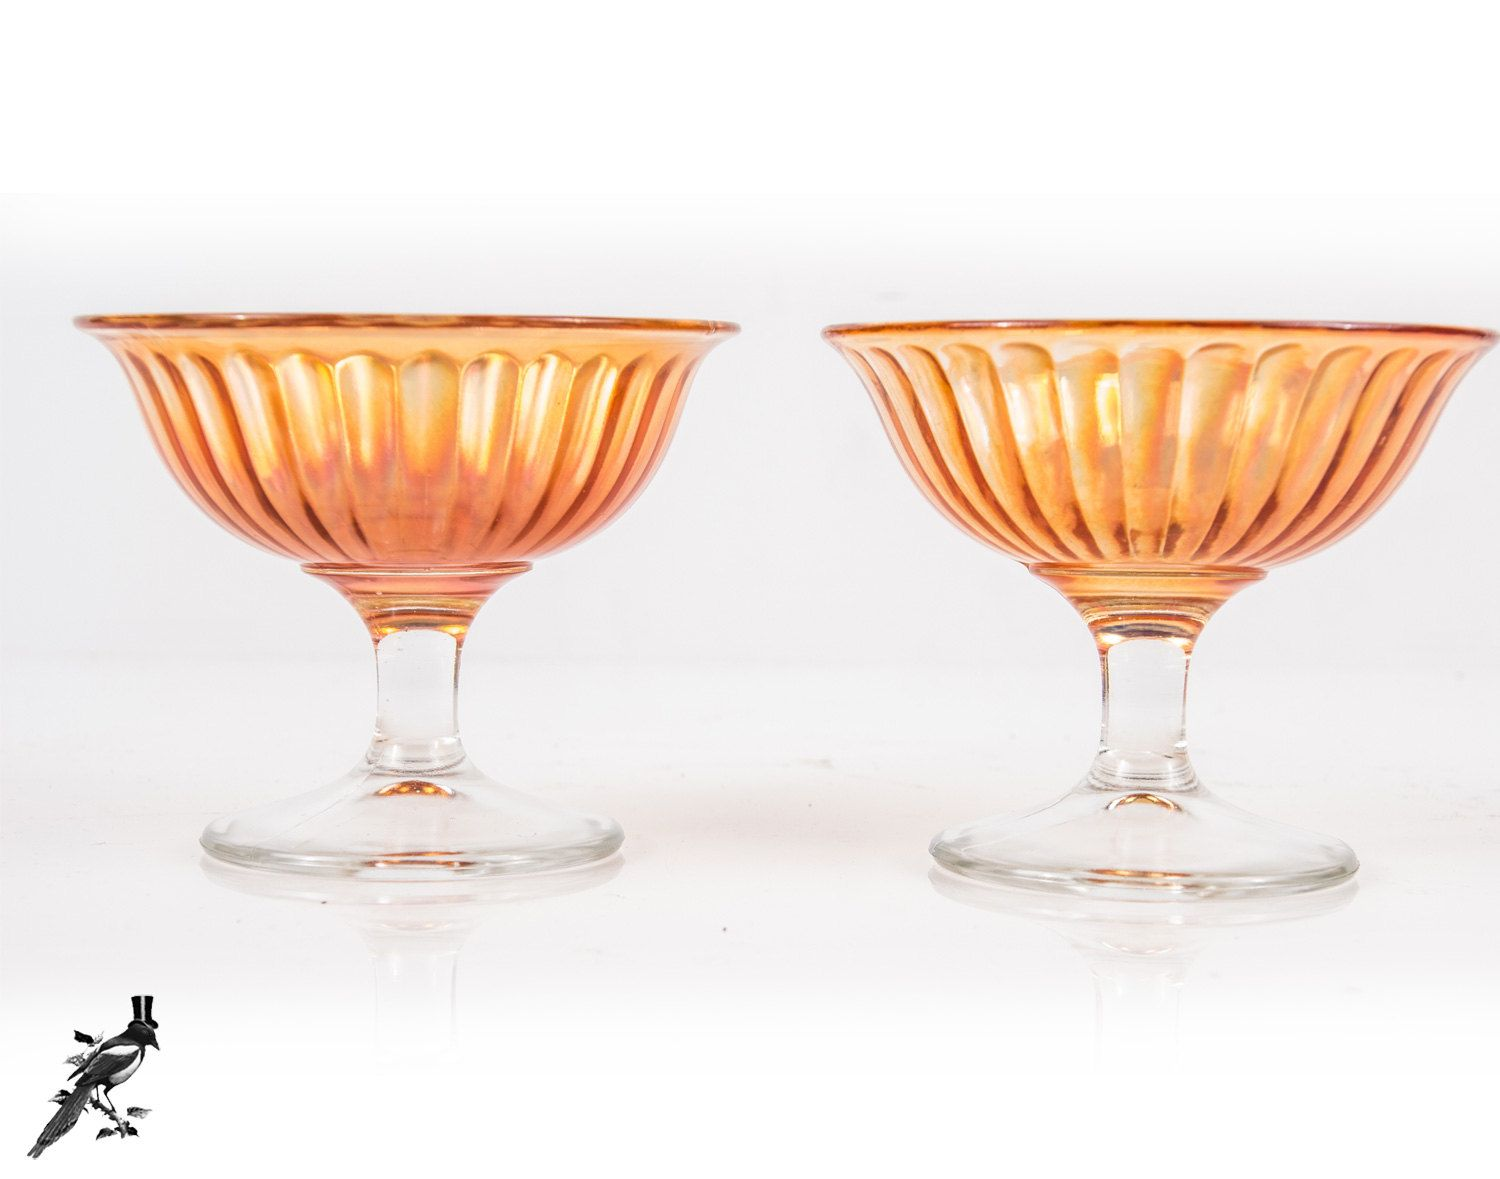 TheCordialMagpie on Etsy: Vintage Pair of Champagne Coupes / Tall Sherbet Glasses - Marigold Imperial Glass Co Carnival Glass Iridescent Depression Glass Smooth Rays